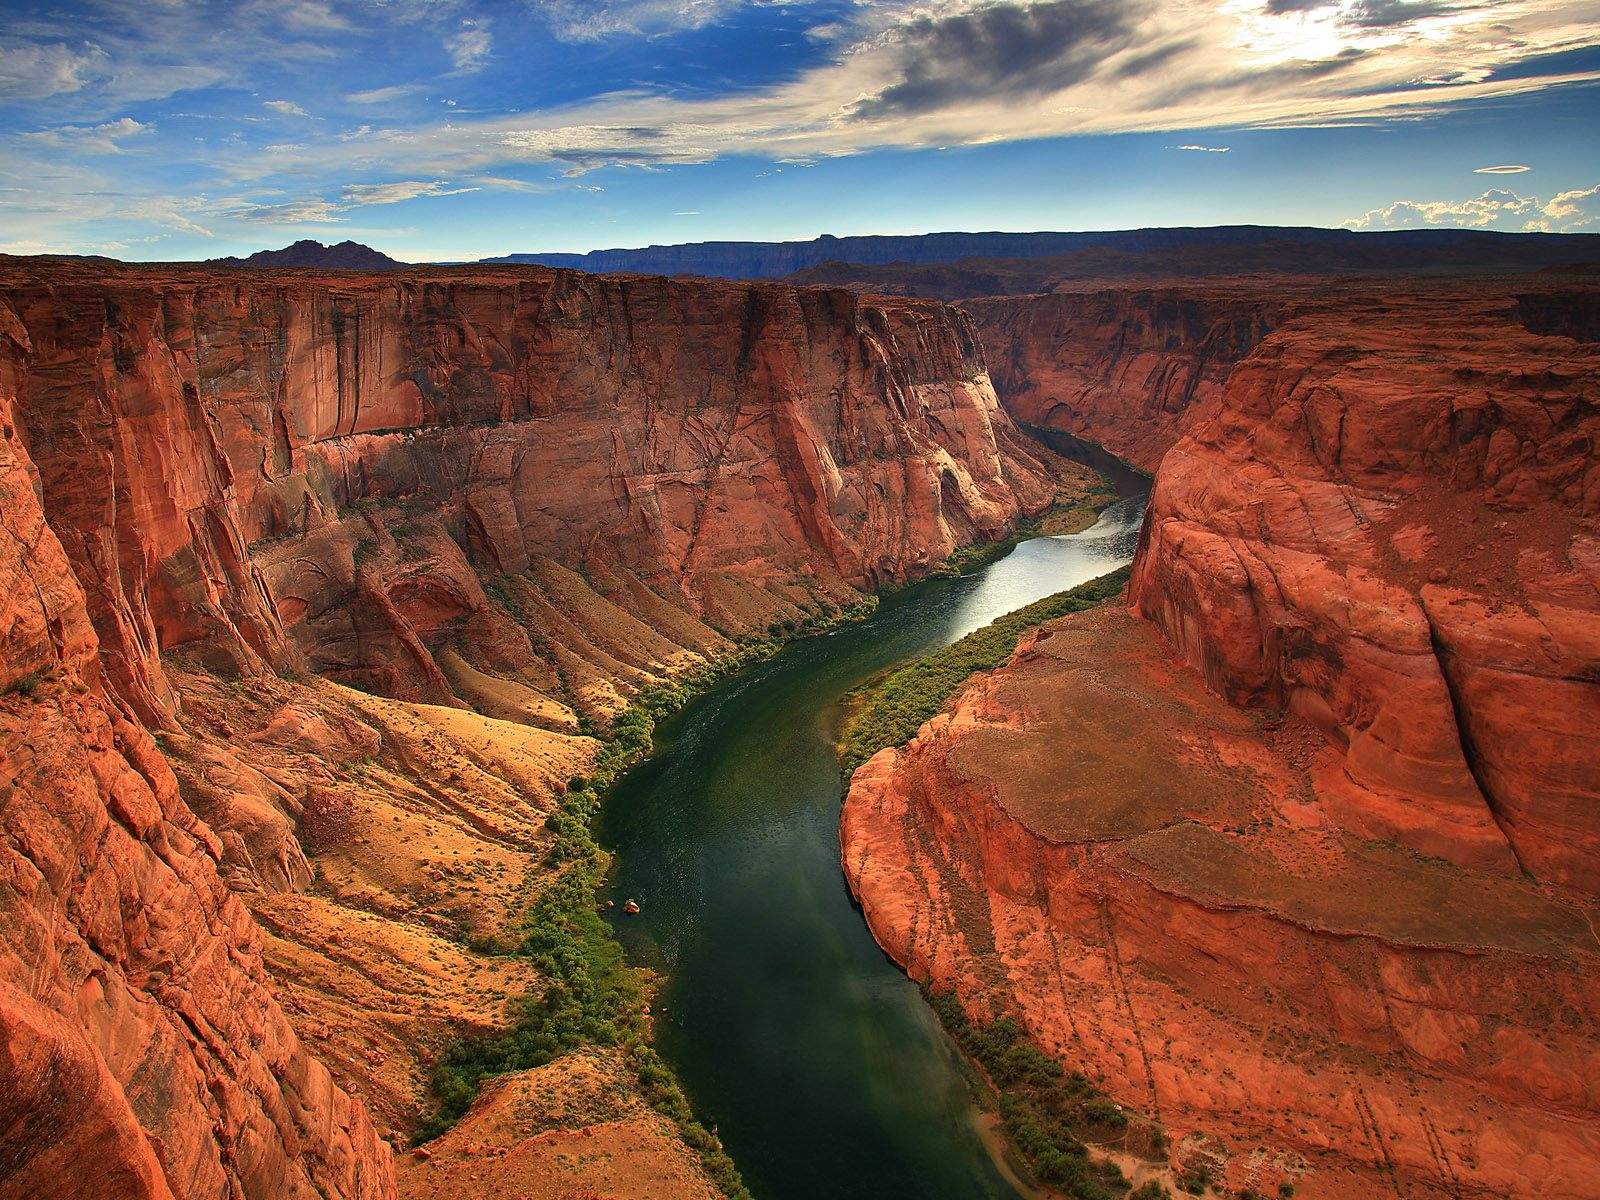 Colorado River Page Arizona   Arizona Photography Desktop Wallpapers 1600x1200